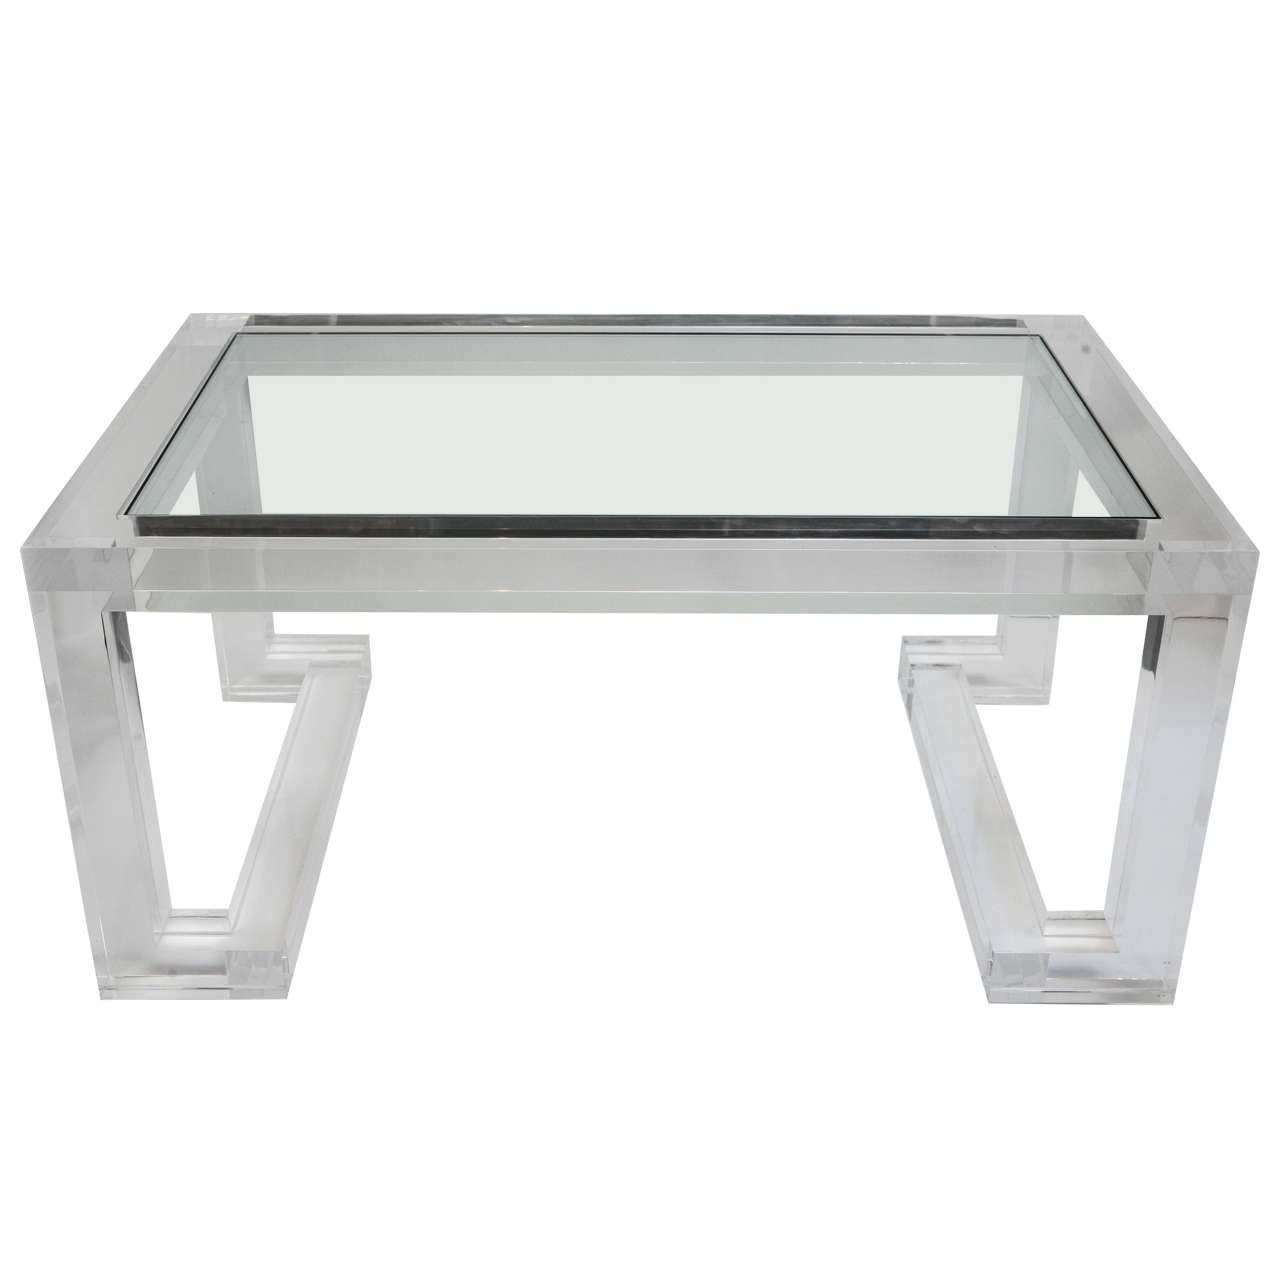 Acrylic and Glass Coffee Table